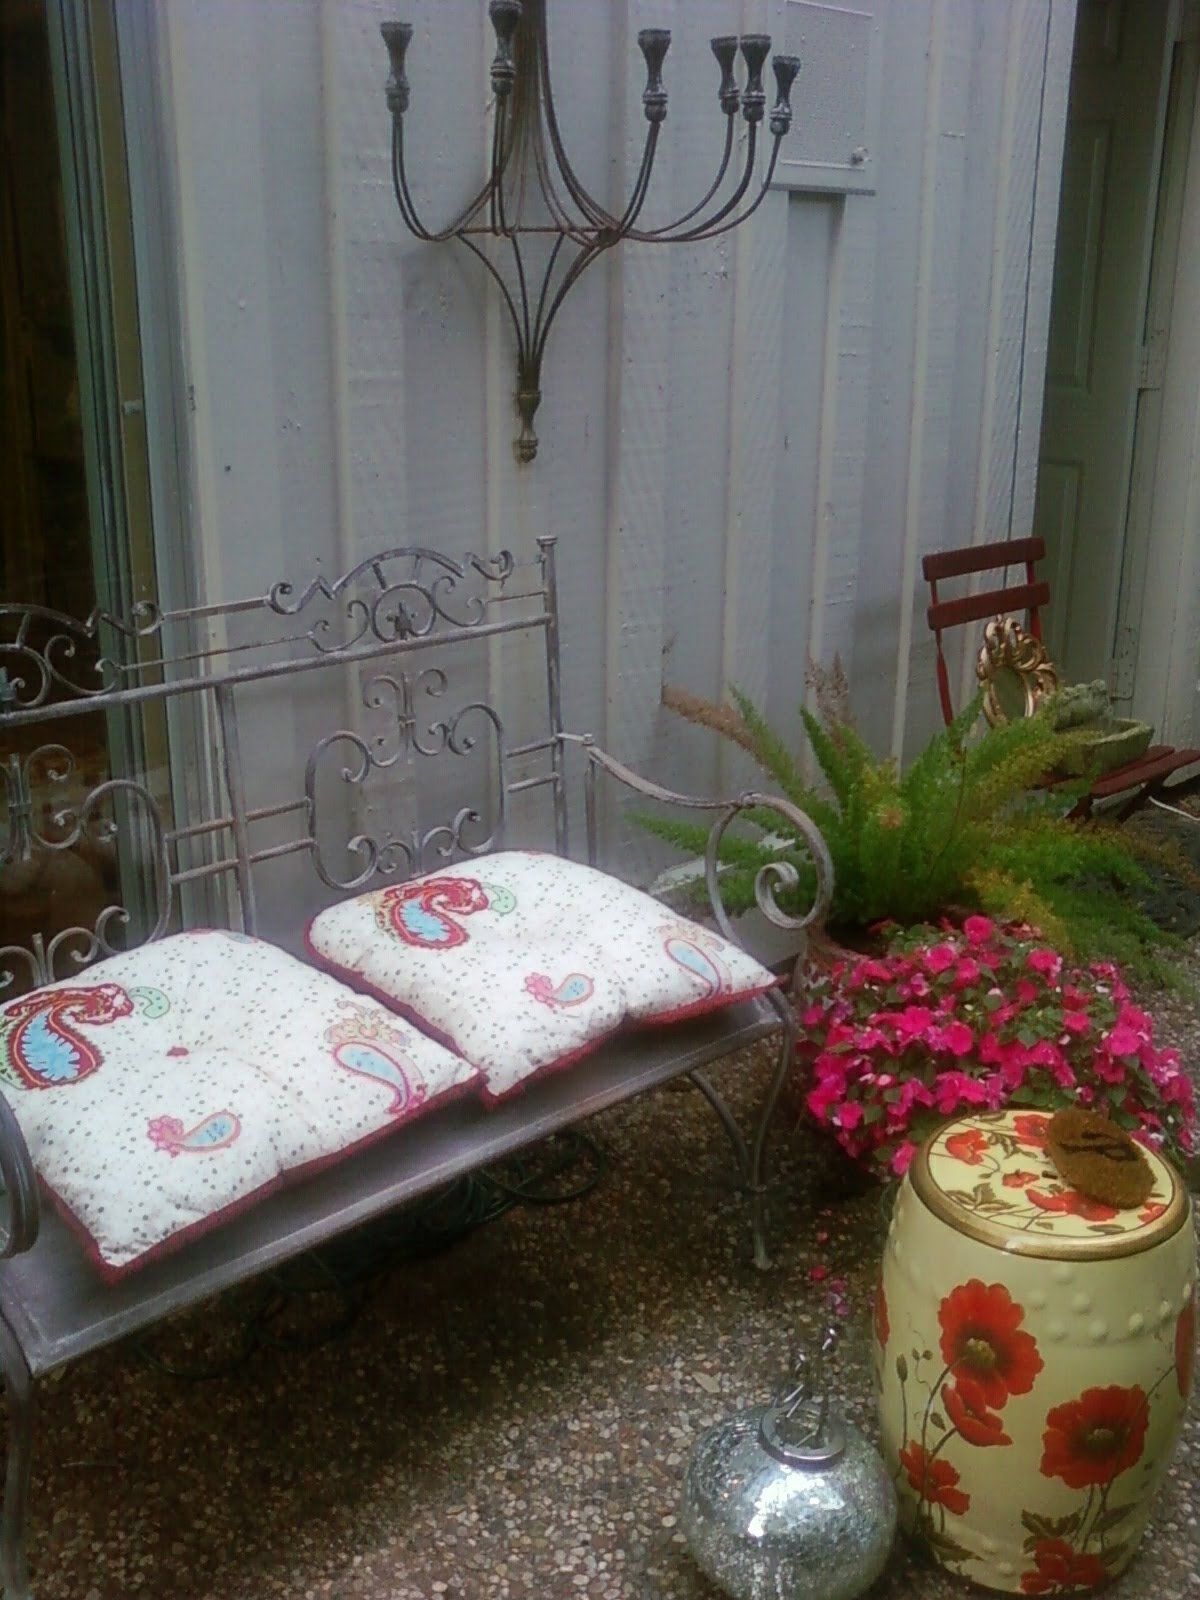 Interior spacelift is interior spacelift shabby chic for Shabby chic yard